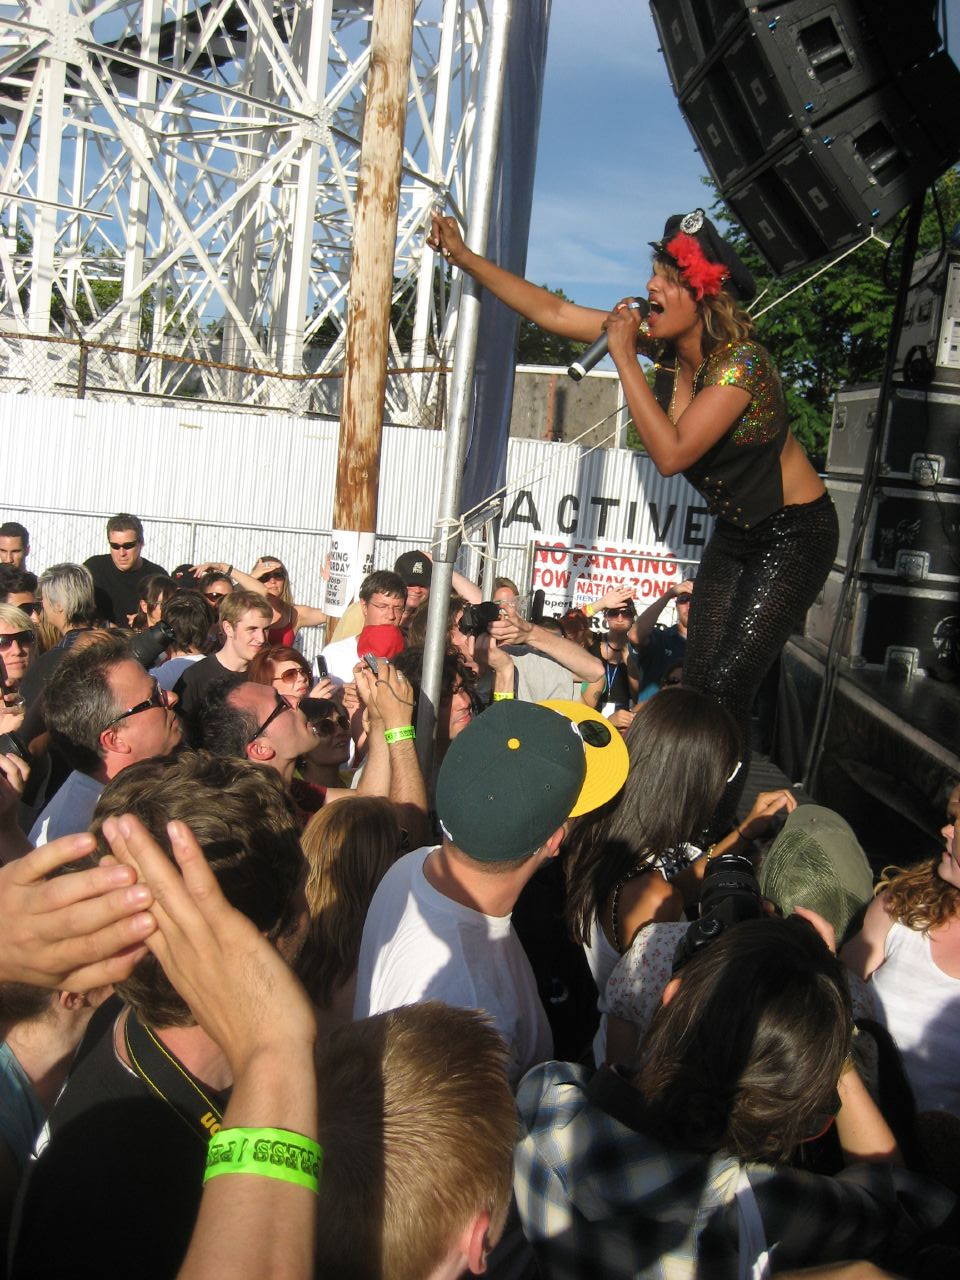 M.I.A. performs at the Siren Music Festival in 2007. (J. Appleseed/Flickr)